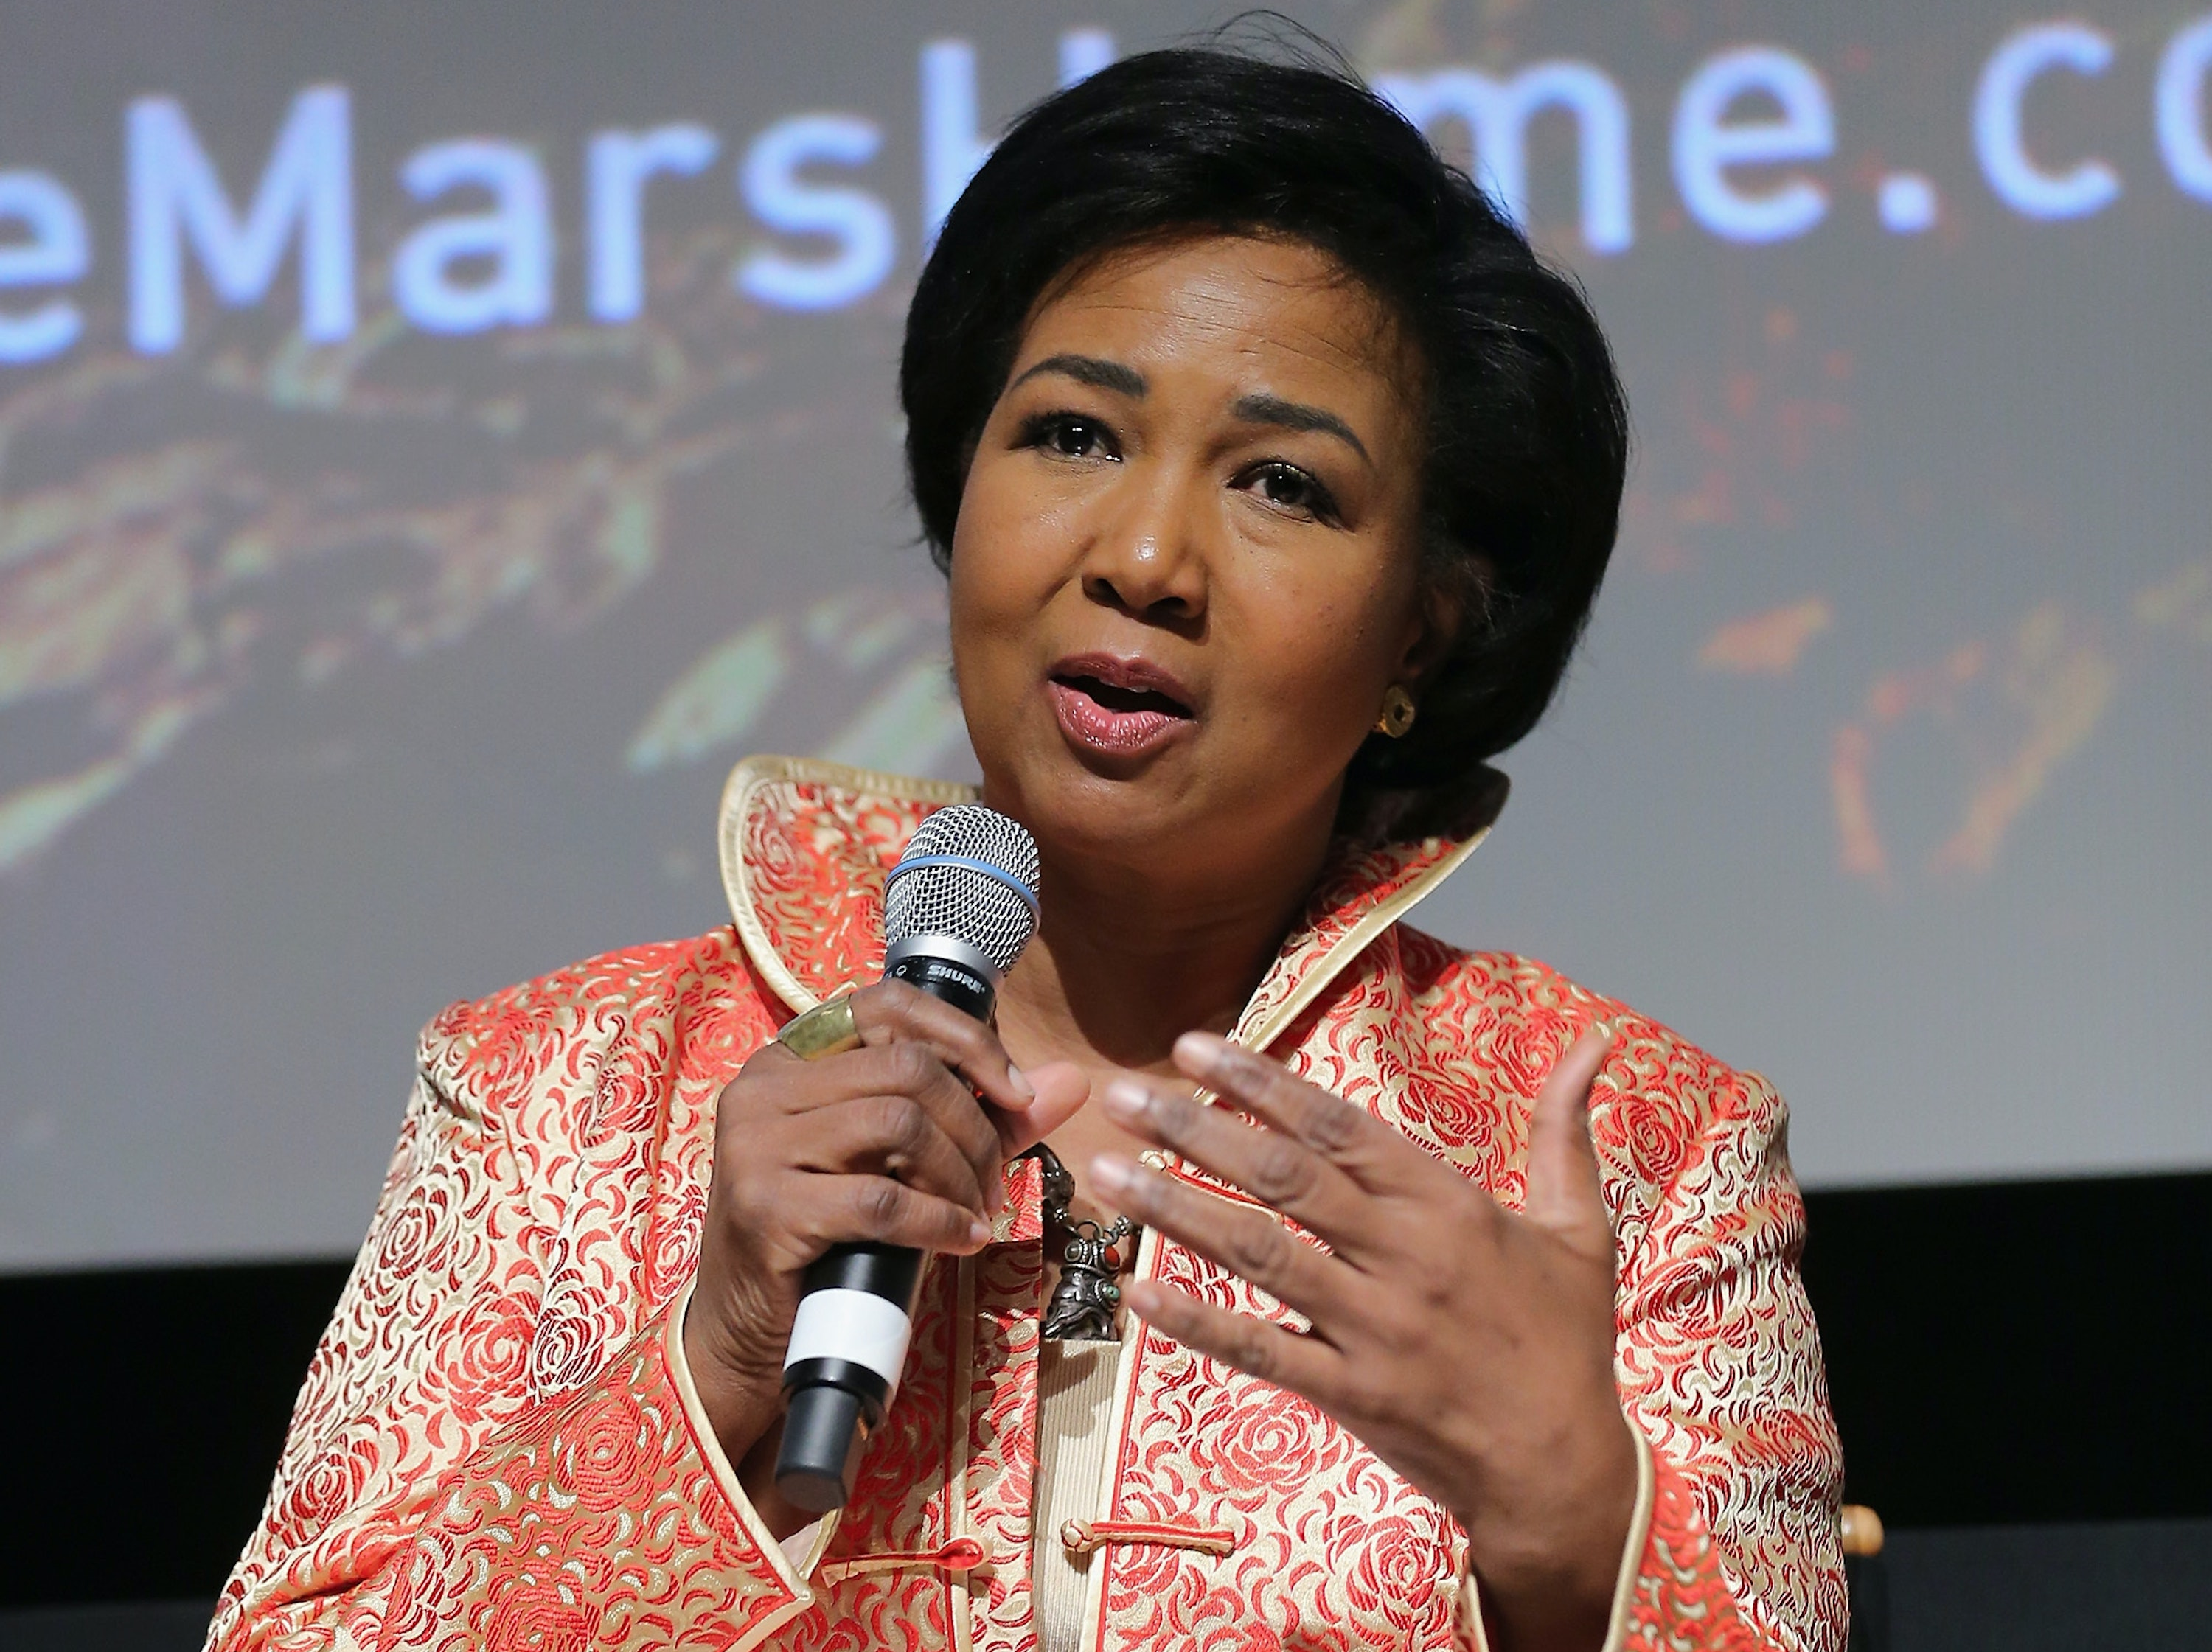 mae jemison national geographic mars